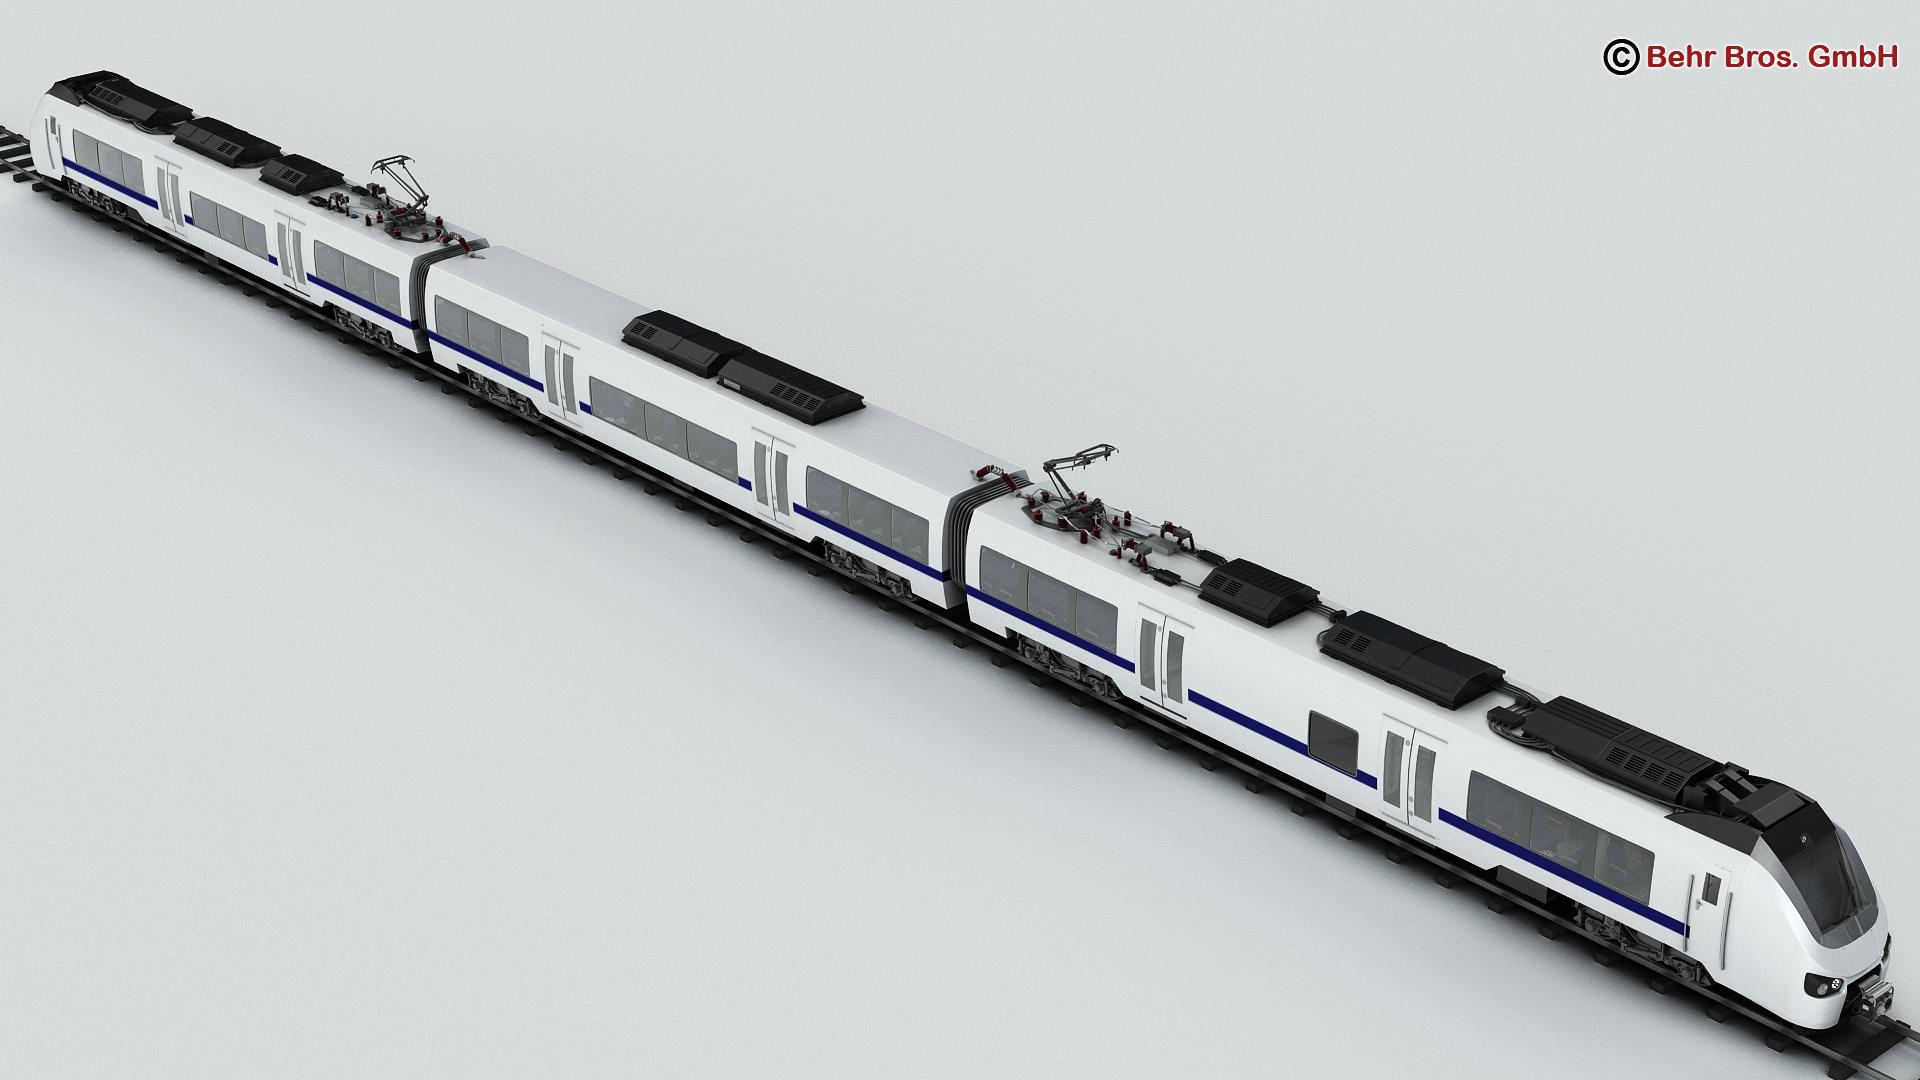 generic commuter train 3d model 3ds max fbx c4d ma mb obj 206607